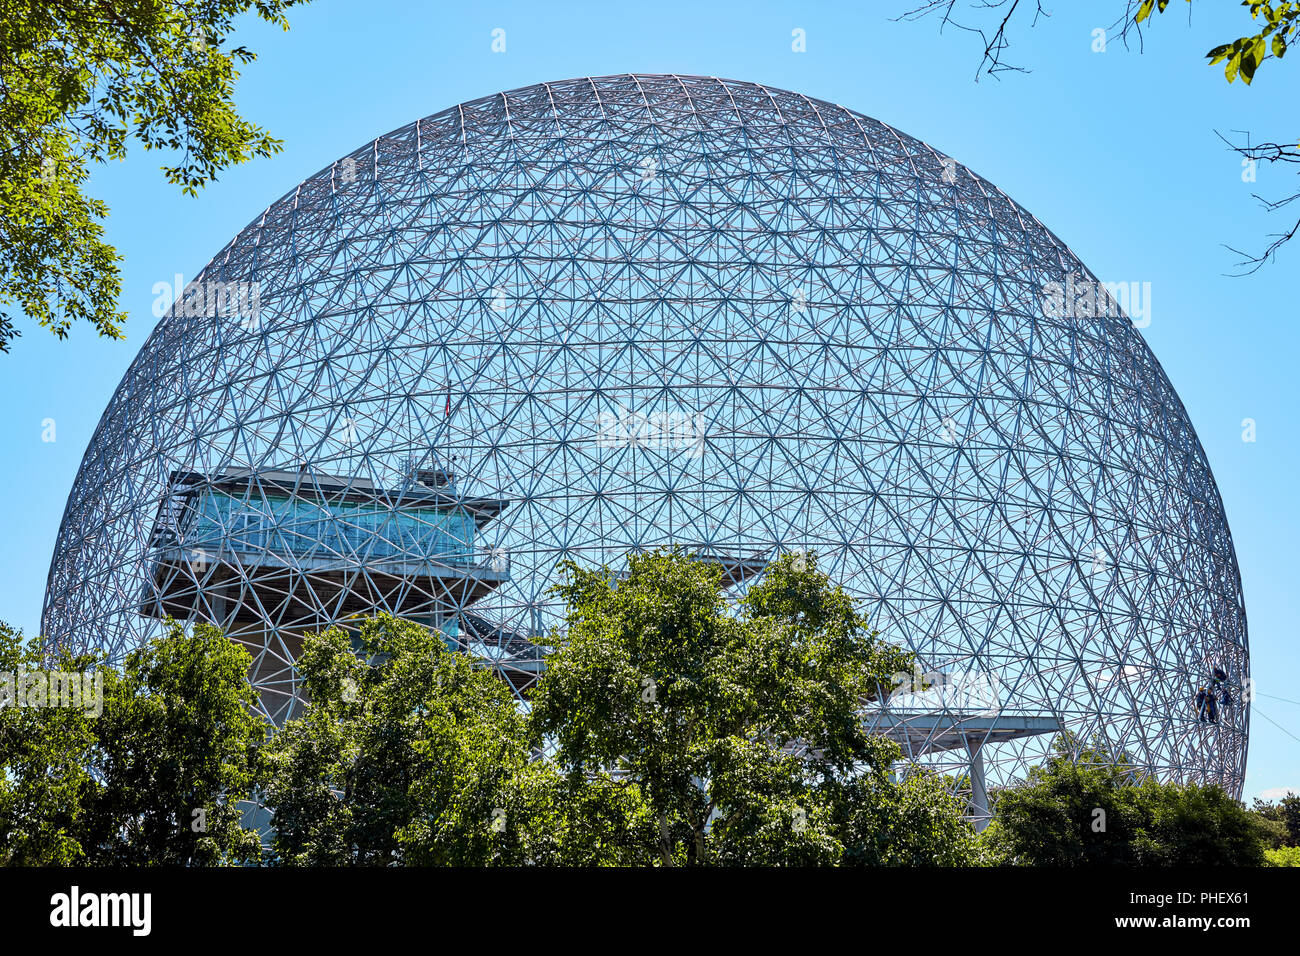 Biosphere environment museum in Parc Jean Drapeau on Saint-Helen island in Montreal, Quebec, Canada. Stock Photo